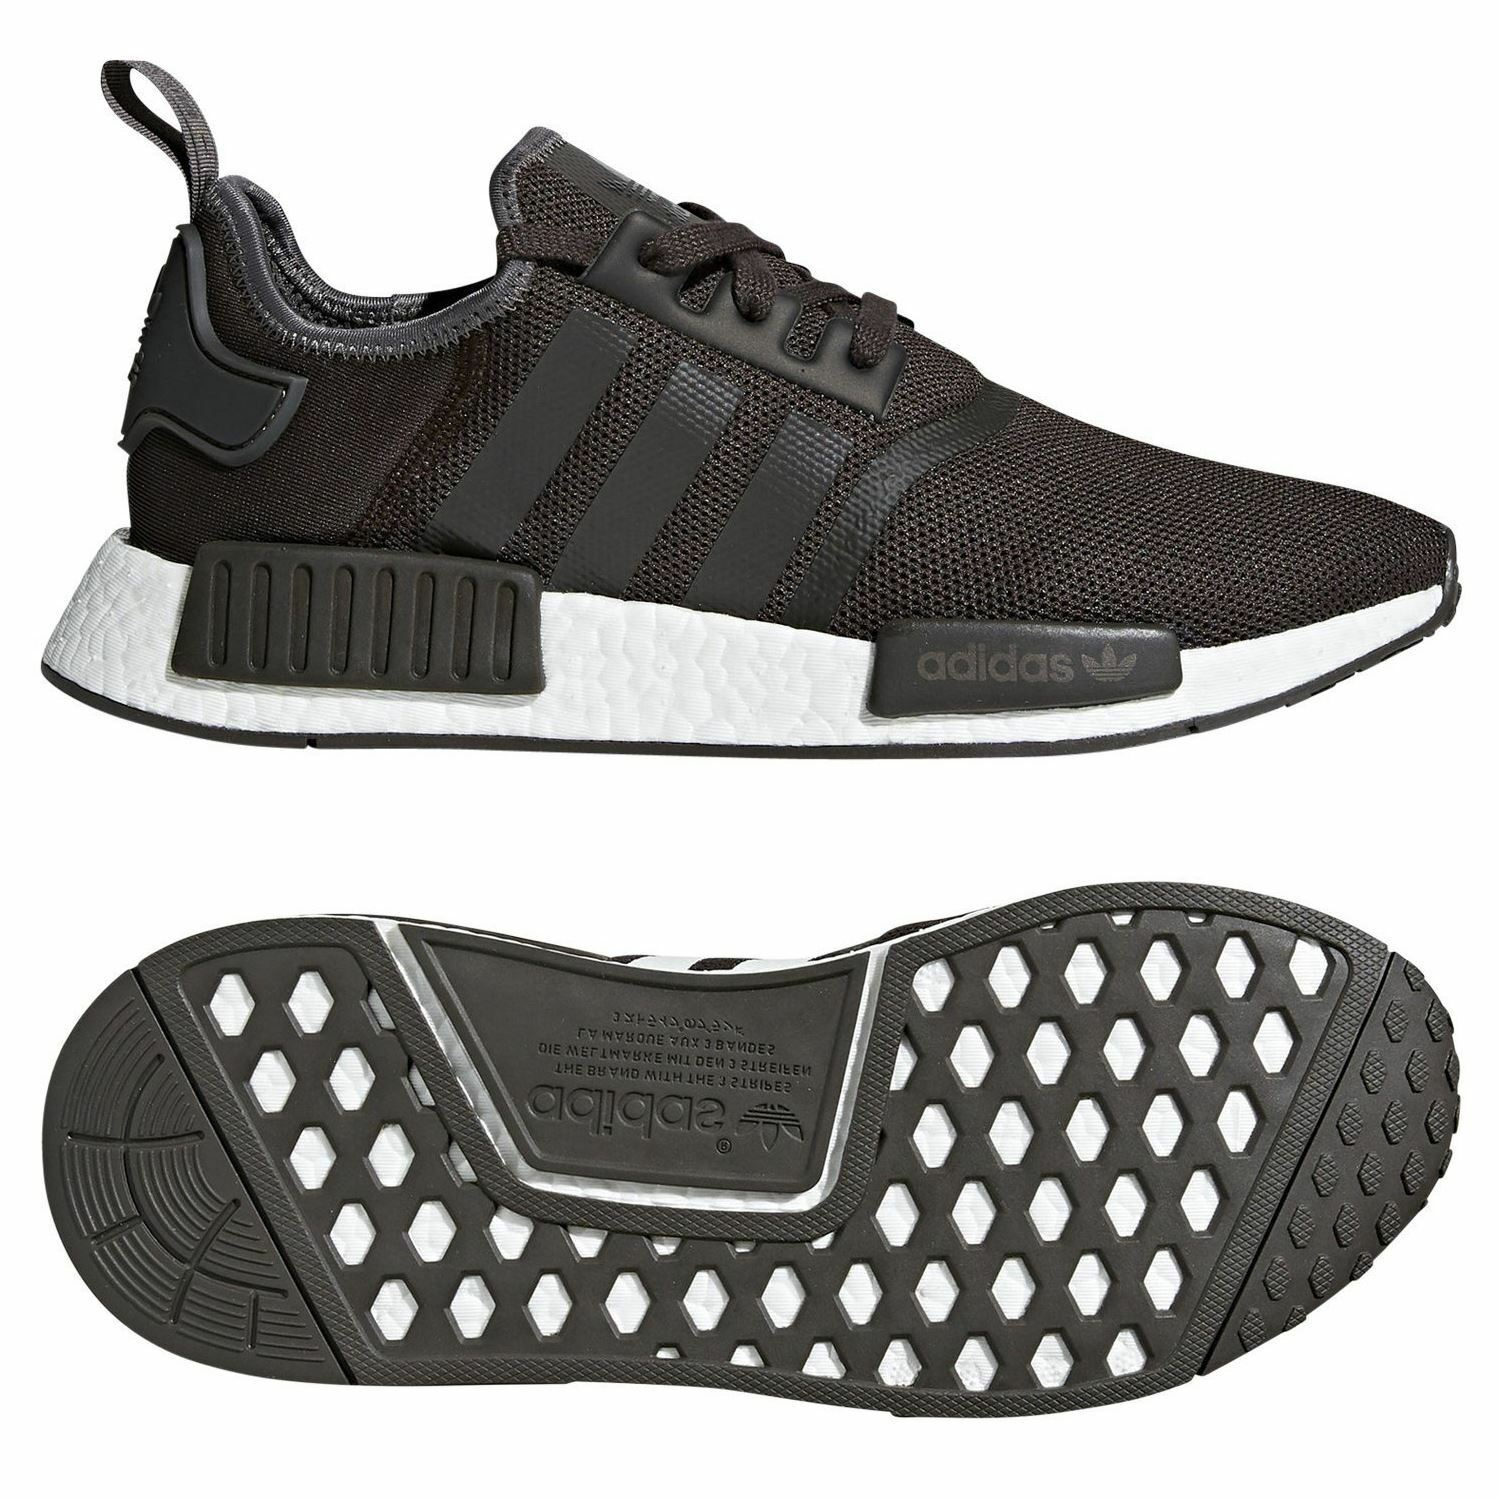 Adidas ORIGINALS NMD_R1 TRAINERS BROWN SNEAKERS SHOES MEN'S 3 STRIPES TREFOIL